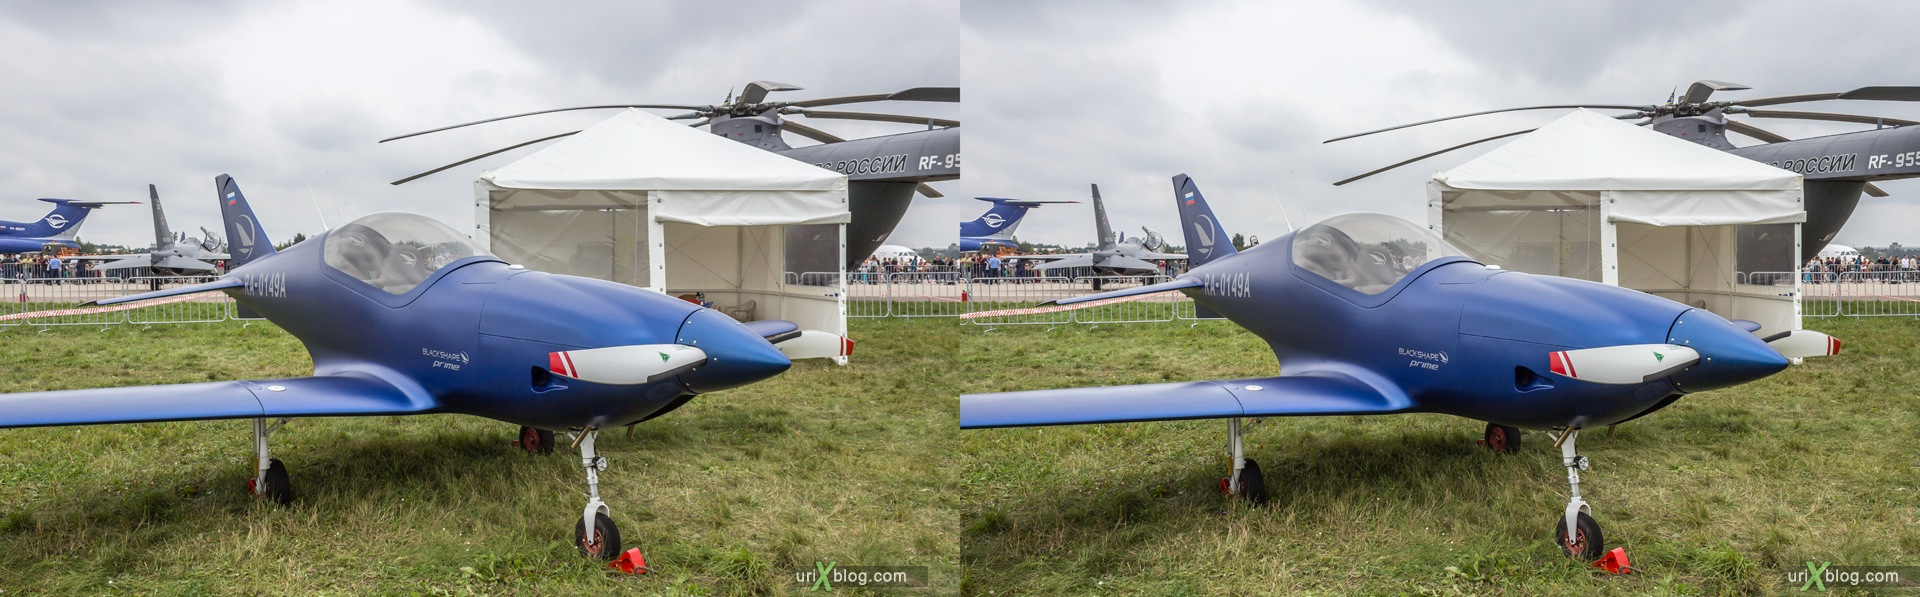 2013, Blackshape Prime, MAKS, International Aviation and Space Salon, Russia, Ramenskoye airfield, airplane, 3D, stereo pair, cross-eyed, crossview, cross view stereo pair, stereoscopic